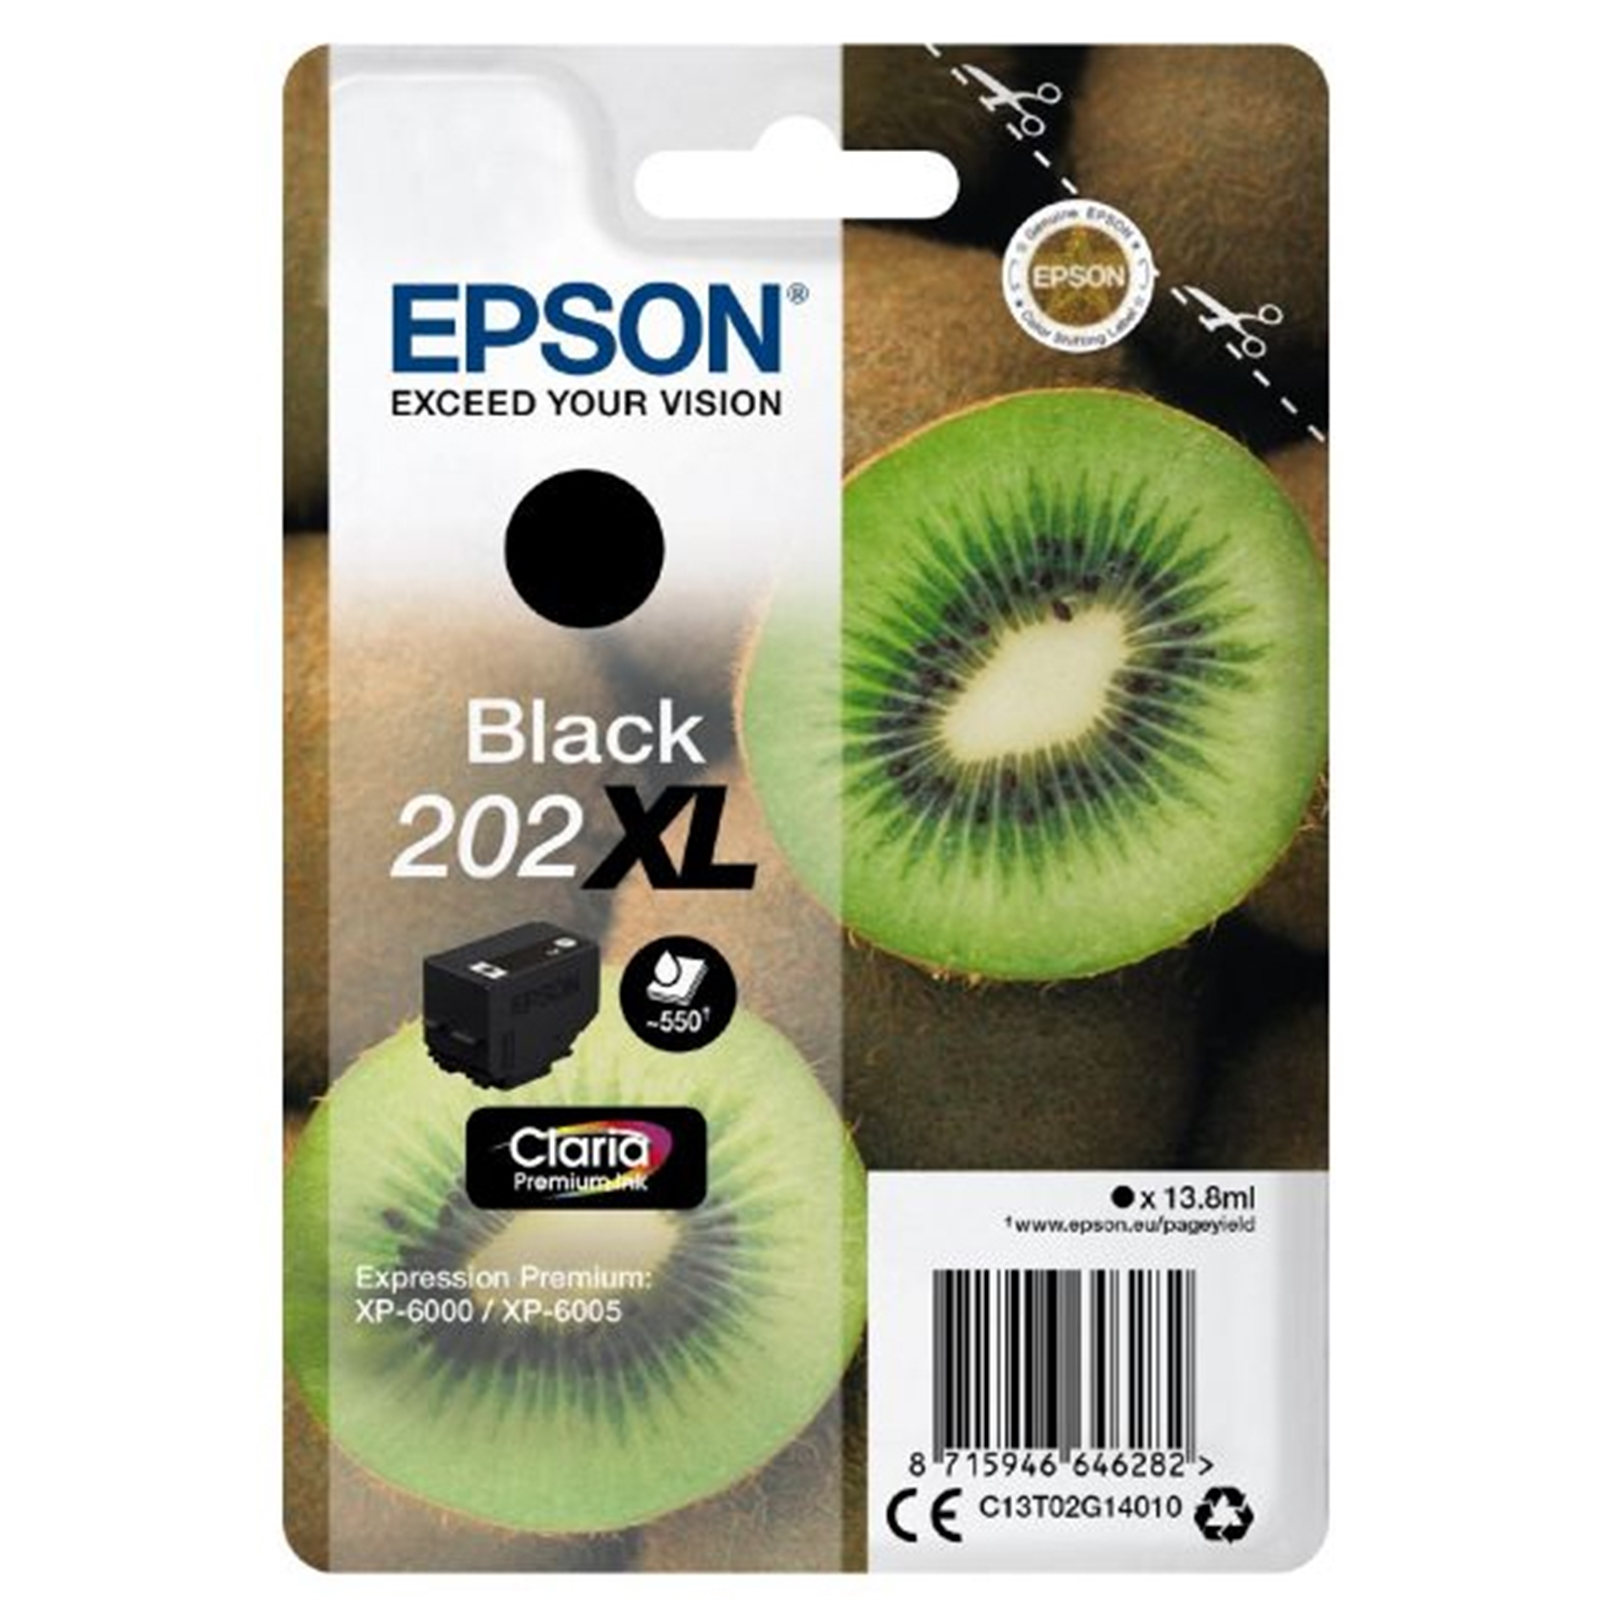 Epson 202XL photo black high-cap ink cartridge original